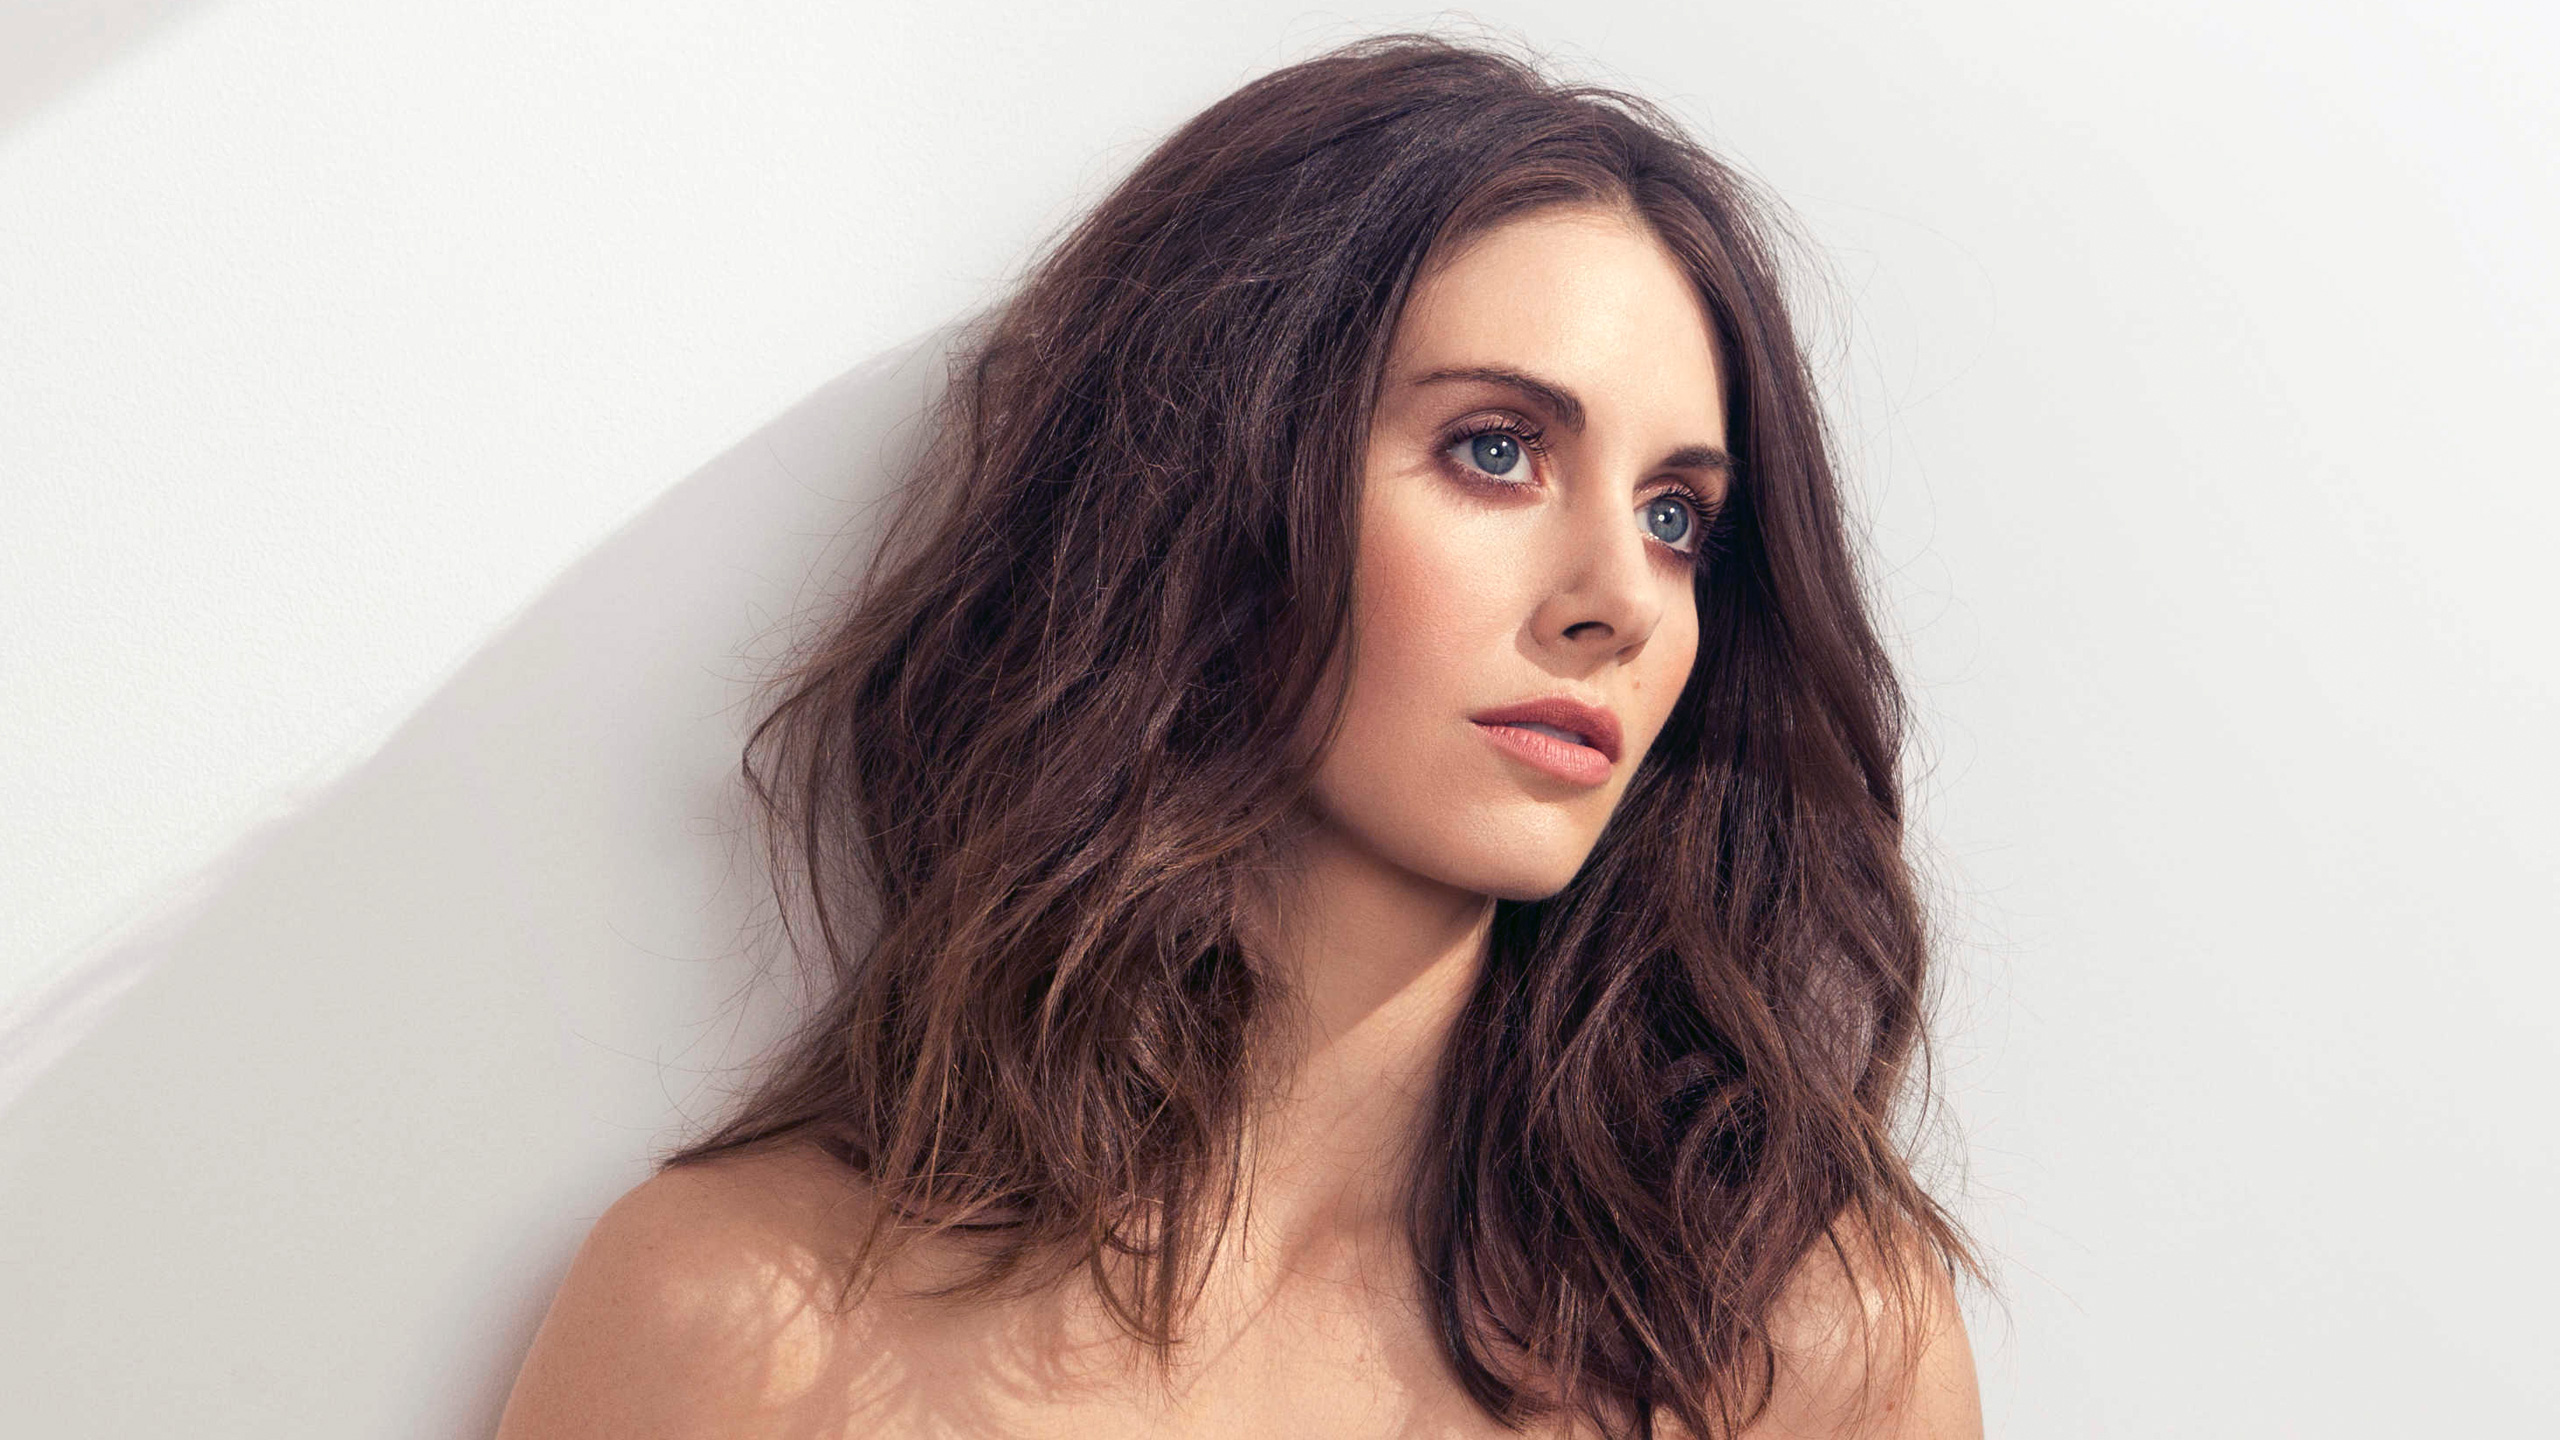 Alison Brie Photoshoot wallpaper